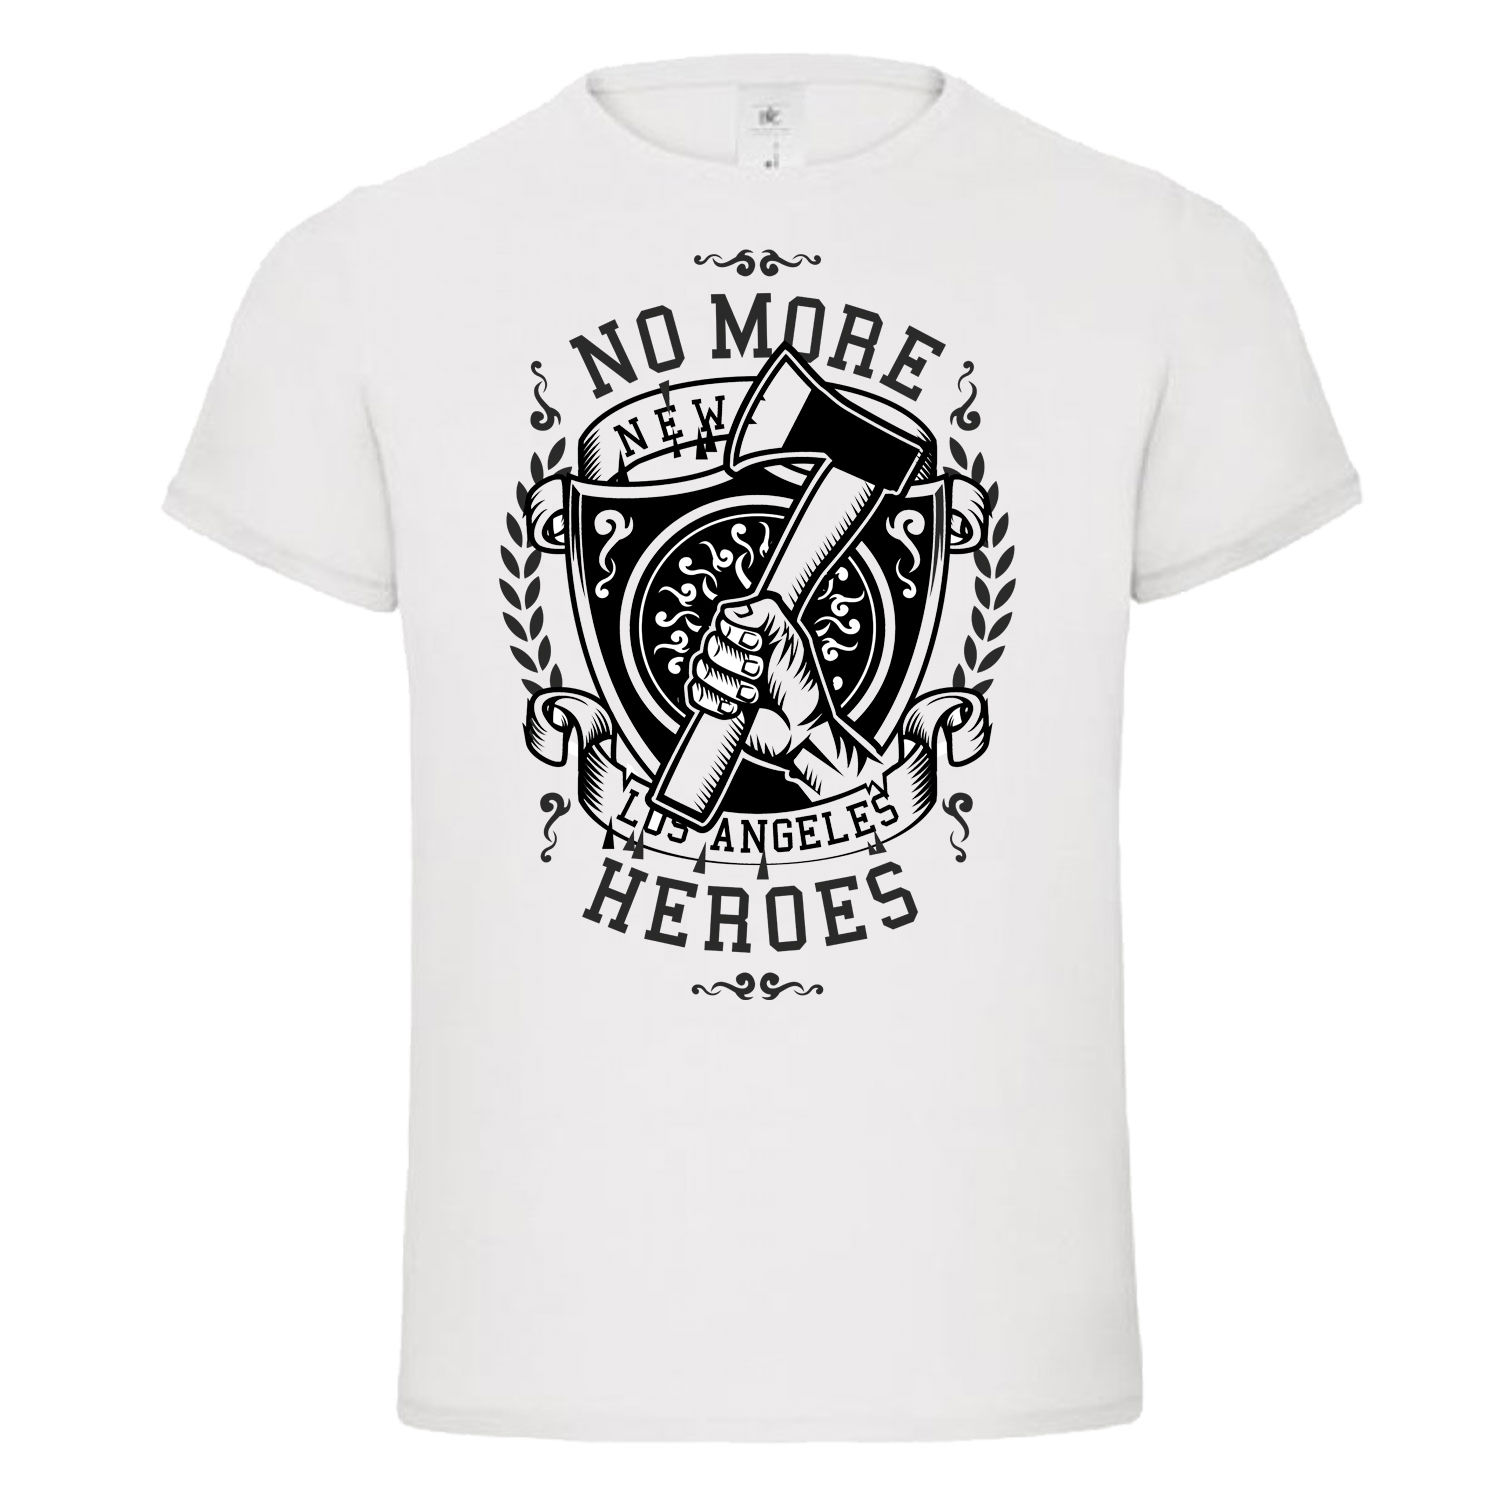 New T Shirts Funny Tops Tee New Unisex Funny TopsNO MORE HEROES fire fighte new york la ny mashup dtg mens t shirt tees in T Shirts from Men 39 s Clothing